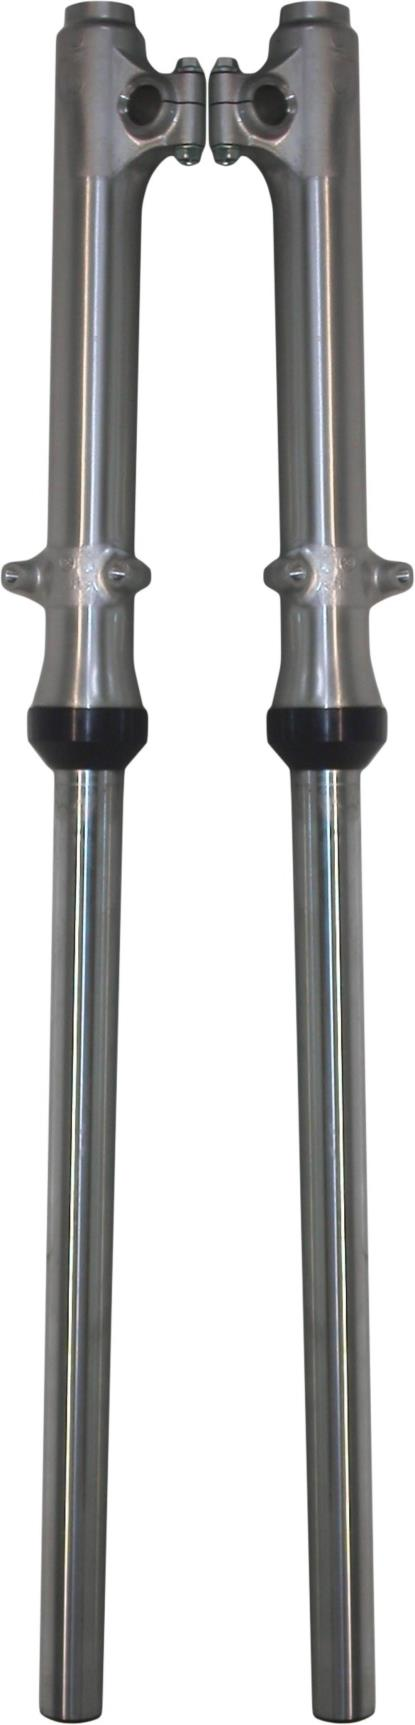 Picture of Front Forks Suzuki GN250 (Stanchion Size 33mm) (Pair)